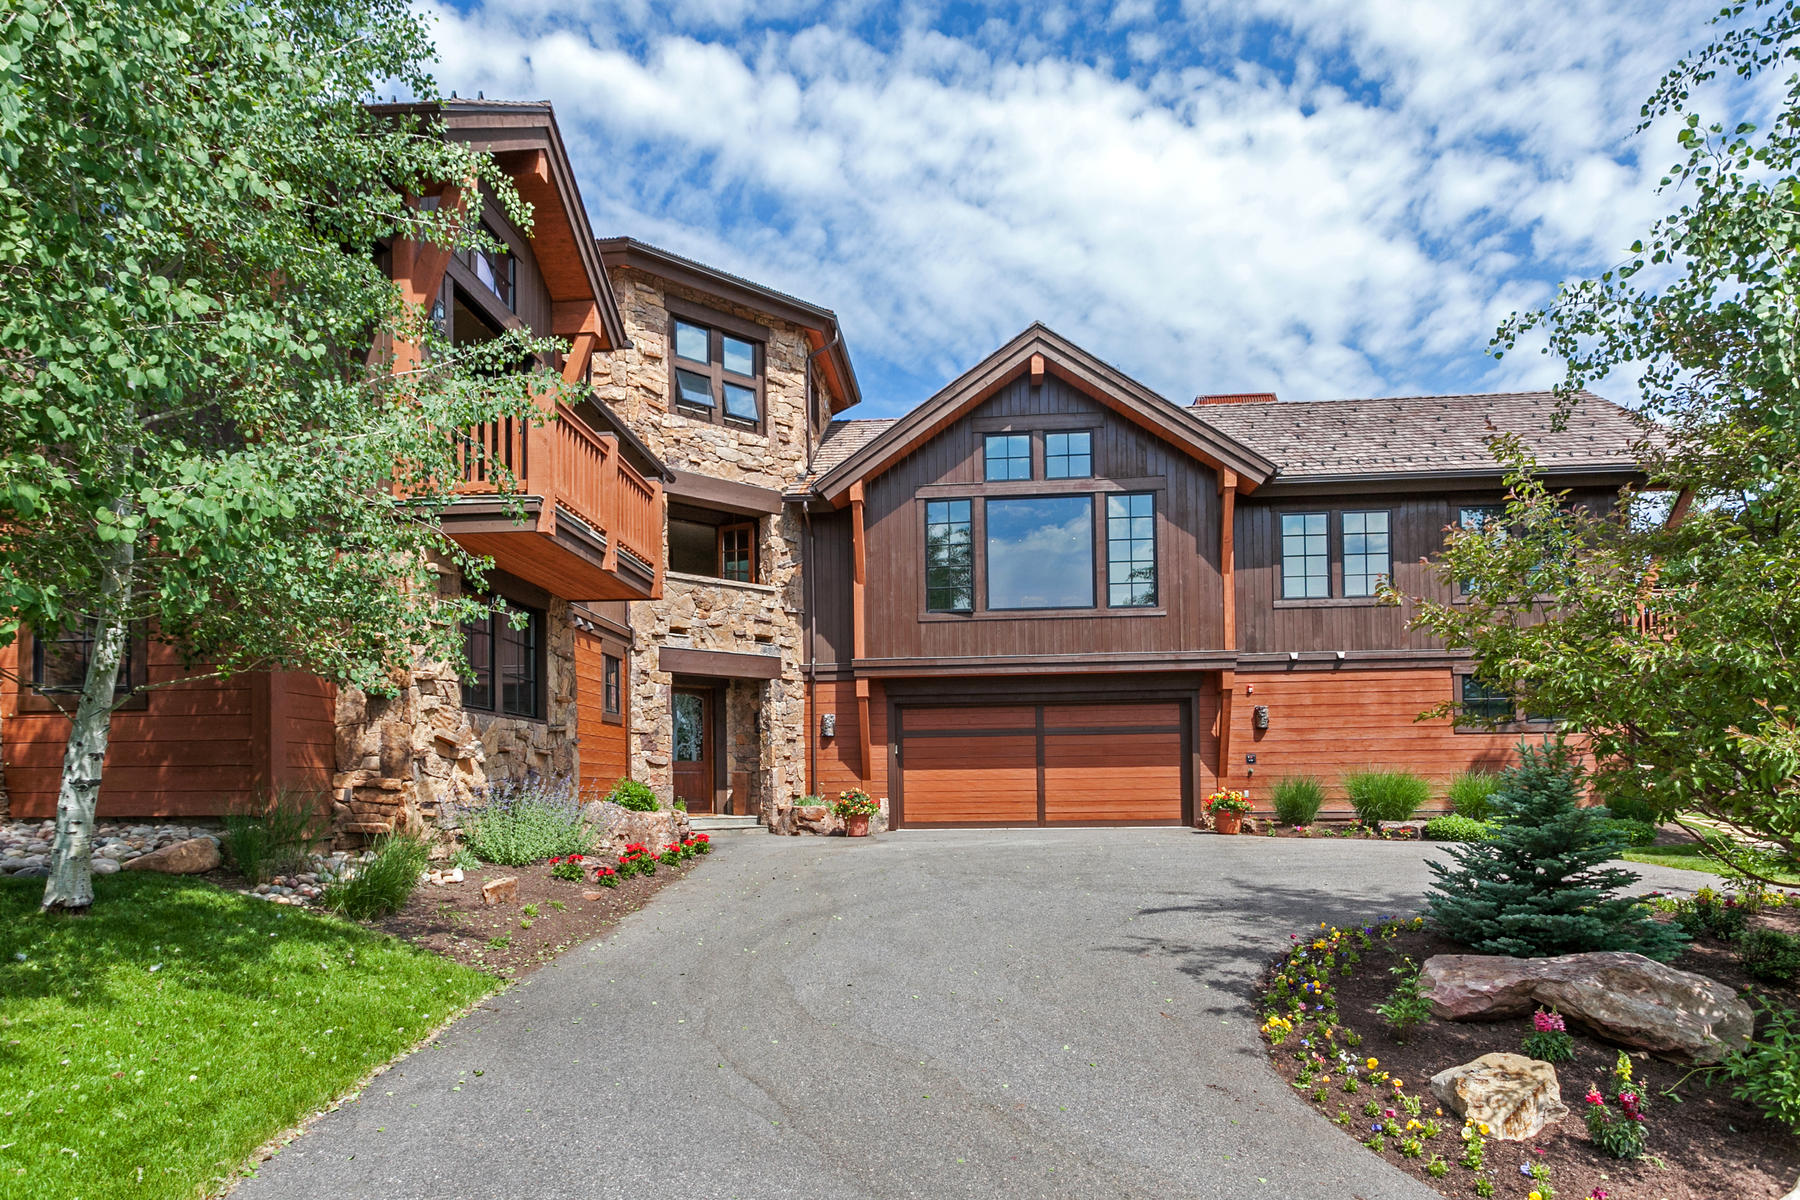 Single Family Home for Active at Stunning Custom Residence 42 Stag Gulch Court Edwards, Colorado 81632 United States